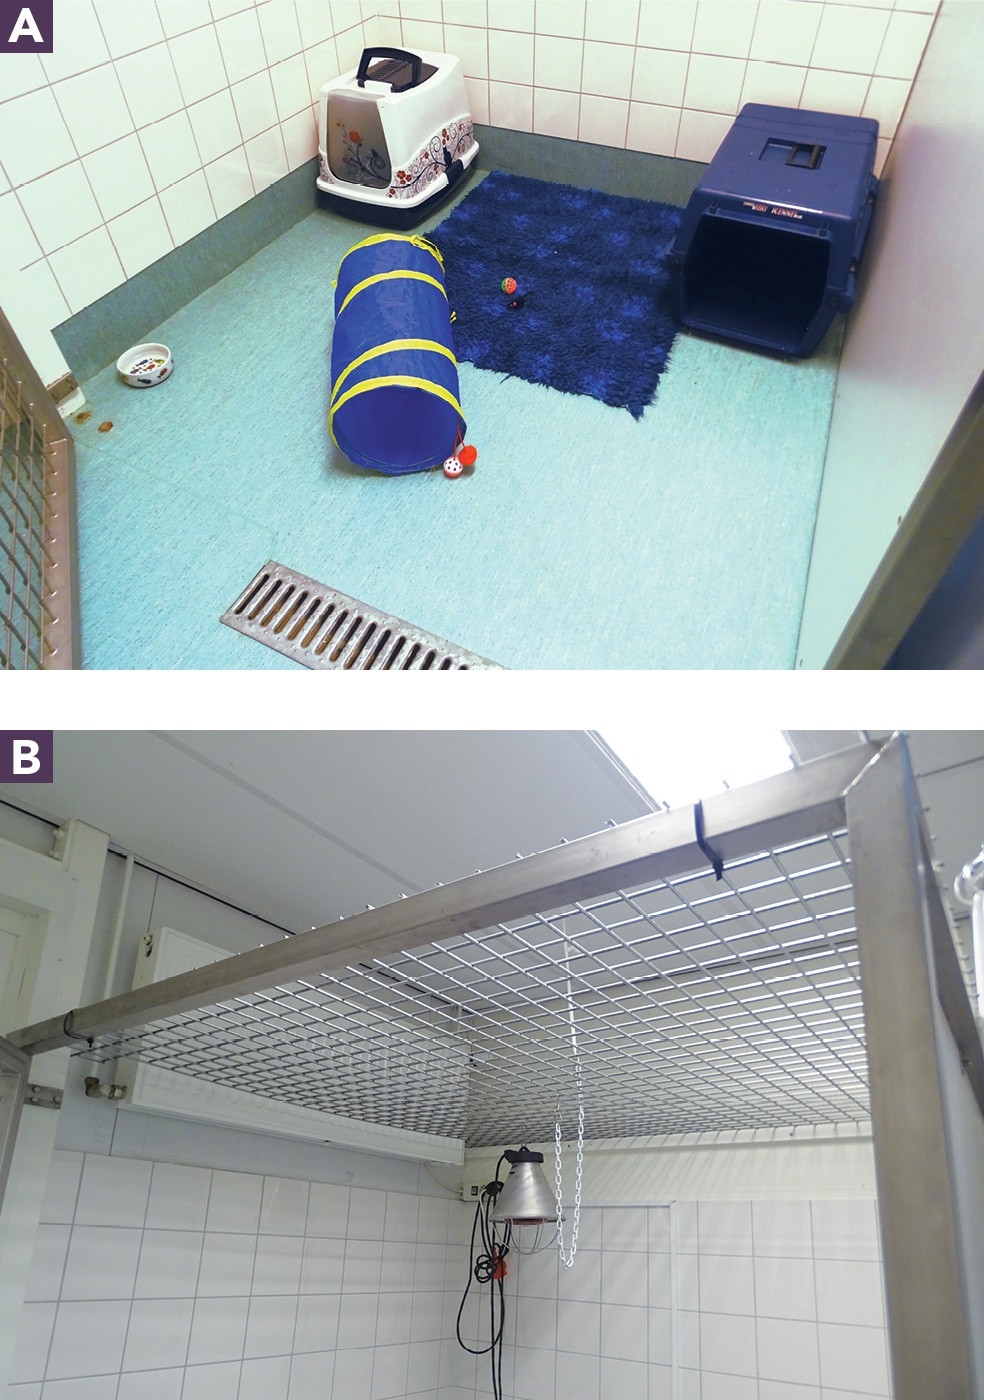 FIGURE 1. (A) A converted isolation cage with hiding places and toys for cats. (B) The mesh roof of the cage.